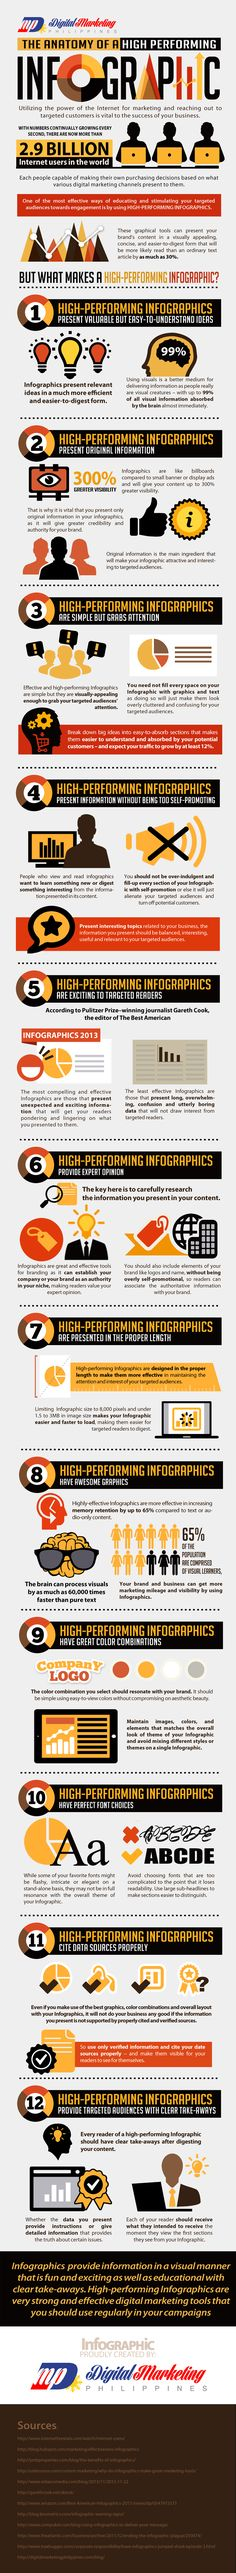 The Anatomy of a High-Performing Infographic (Infographic) Read more at http://www.business2community.com/infographics/anatomy-high-performing-infographic-infographic-01066948#HsJKKxRVpocIvswl.99